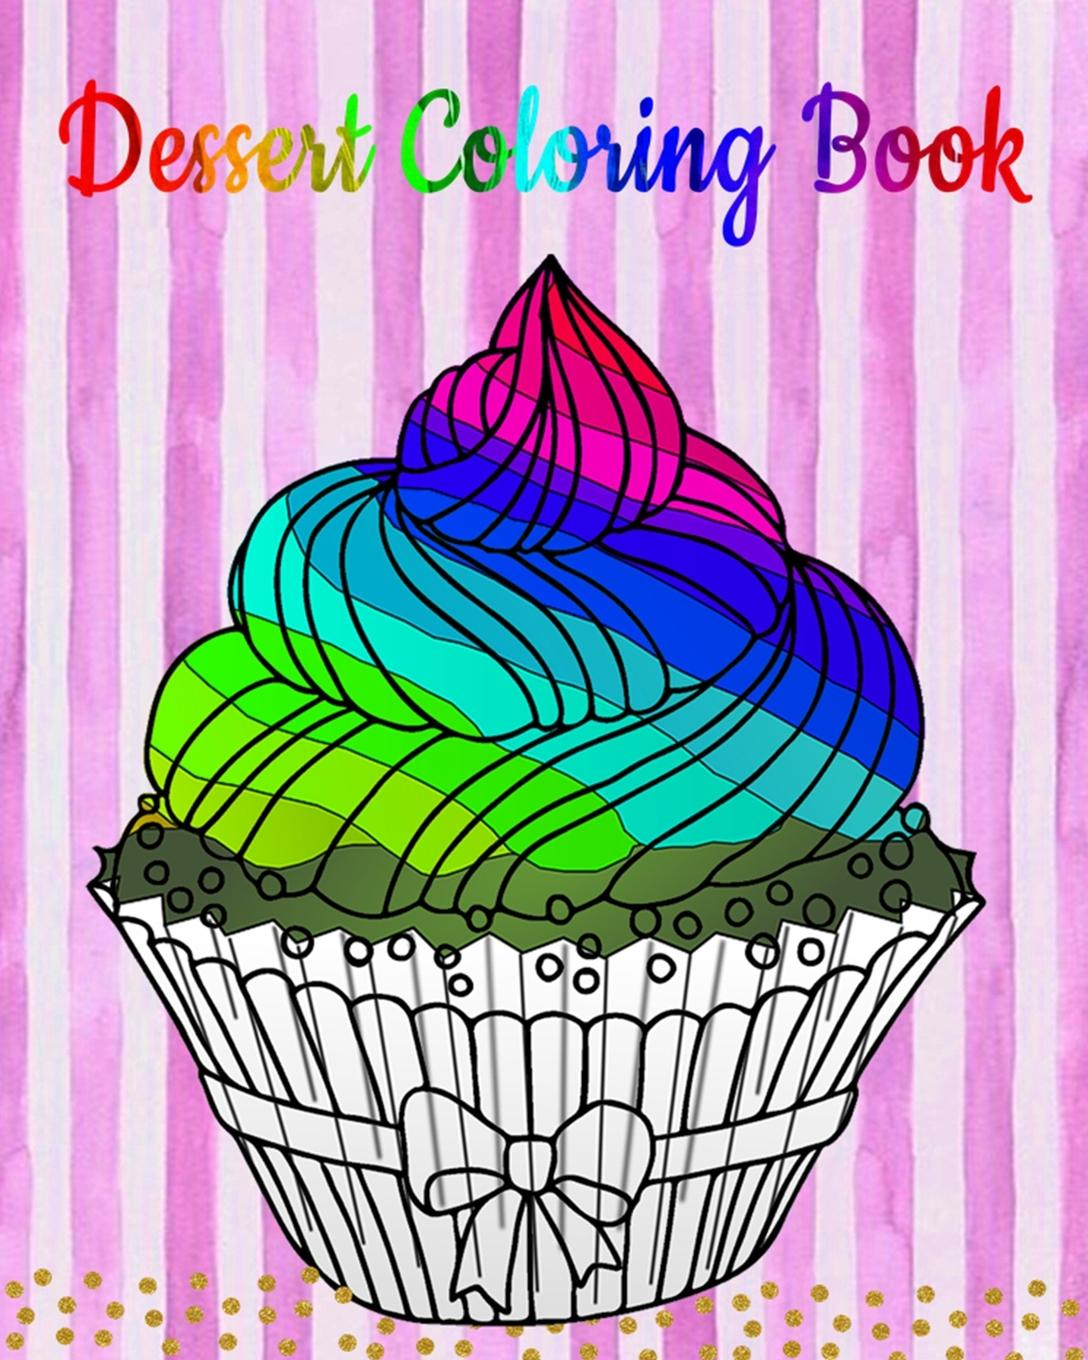 Dessert Coloring Book An Adult Coloring Book With Fun Easy And Relaxing Coloring Pages Coloring Books For Women Ice Creams Cupcakes And More Walmart Com Walmart Com